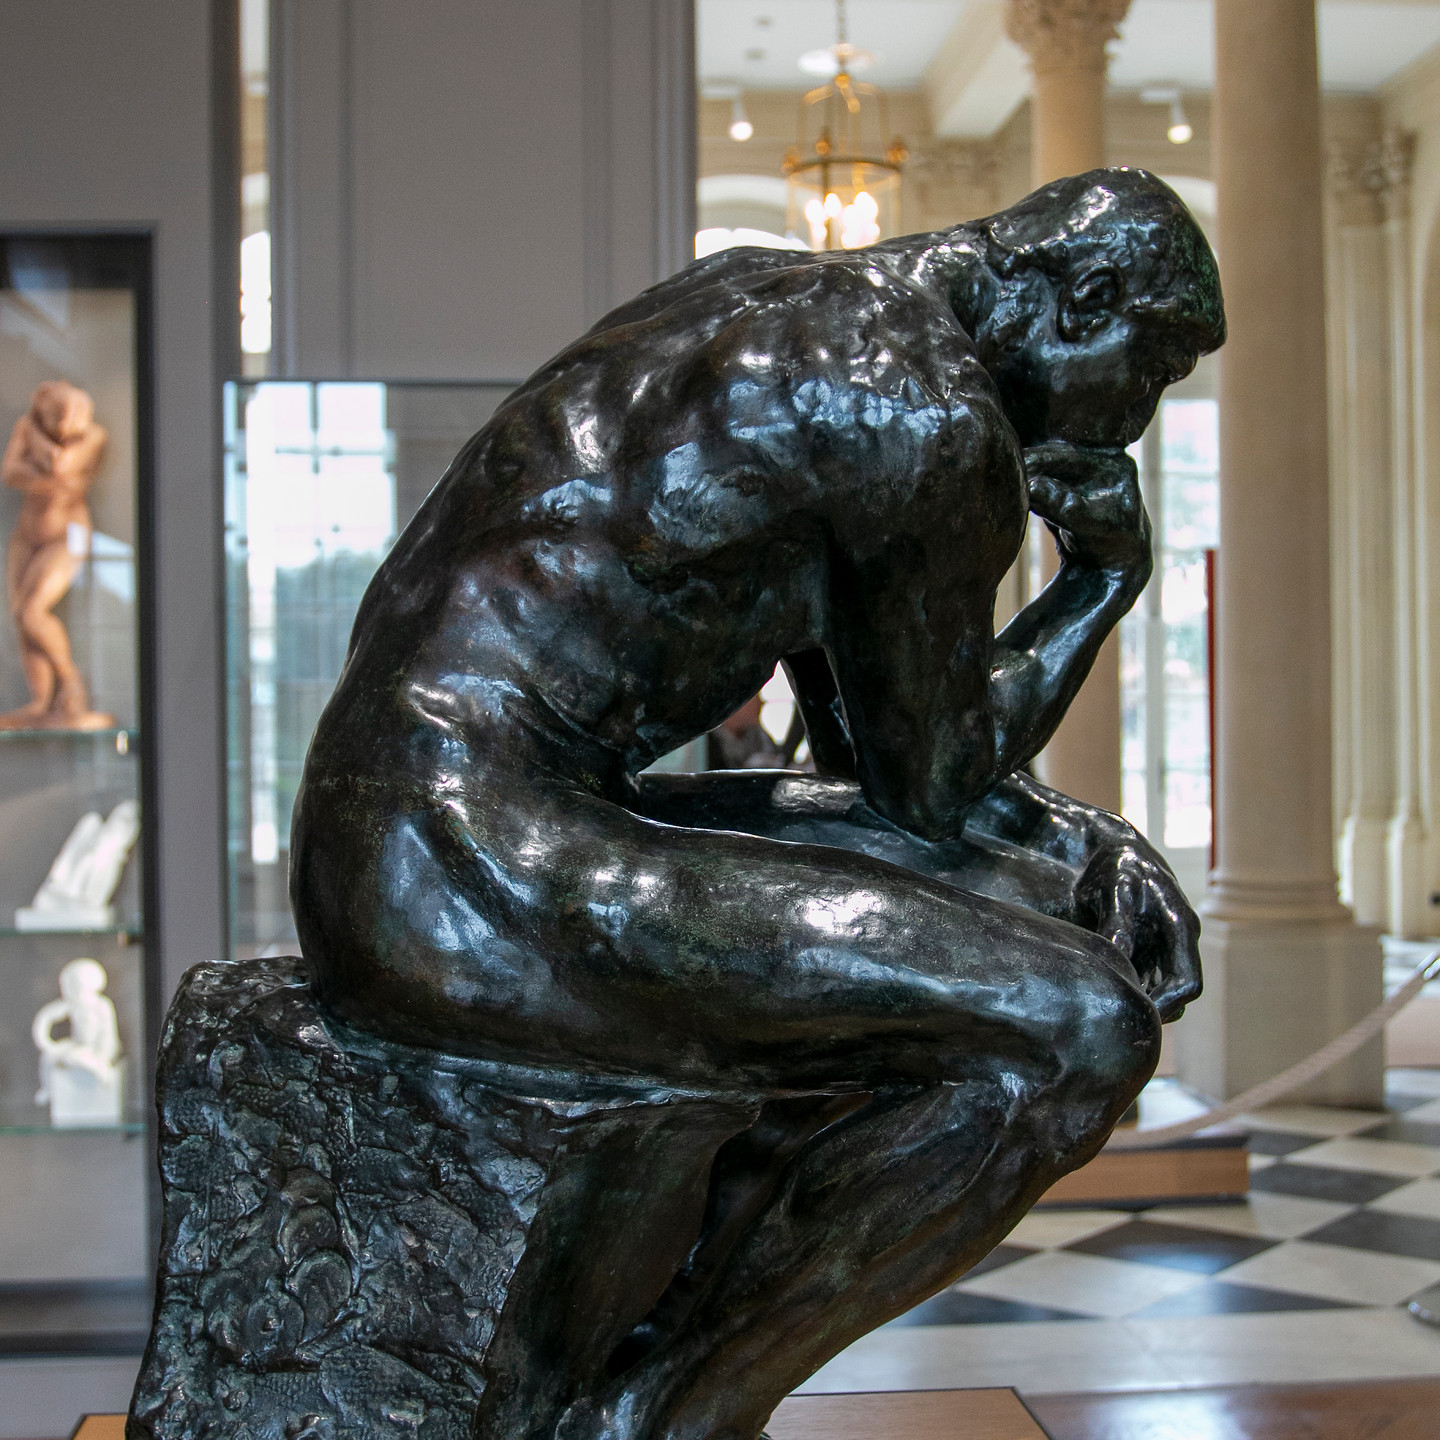 The Thinker, Auguste Rodin